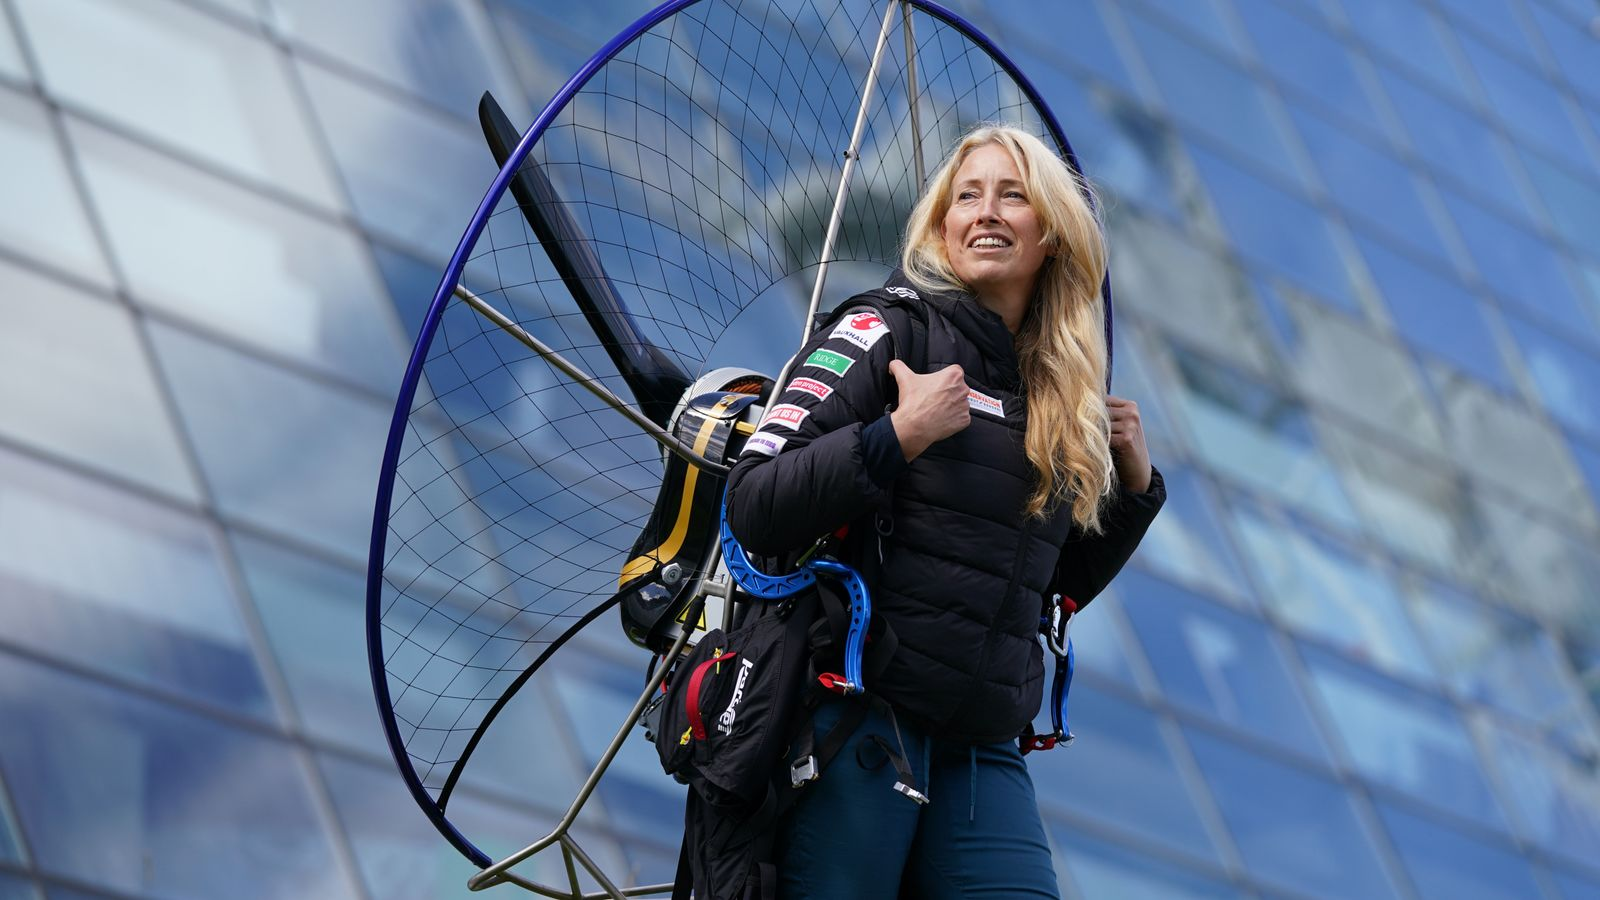 'Human swan' paramotorist Sacha Dench seriously hurt and member of her support staff killed in accident